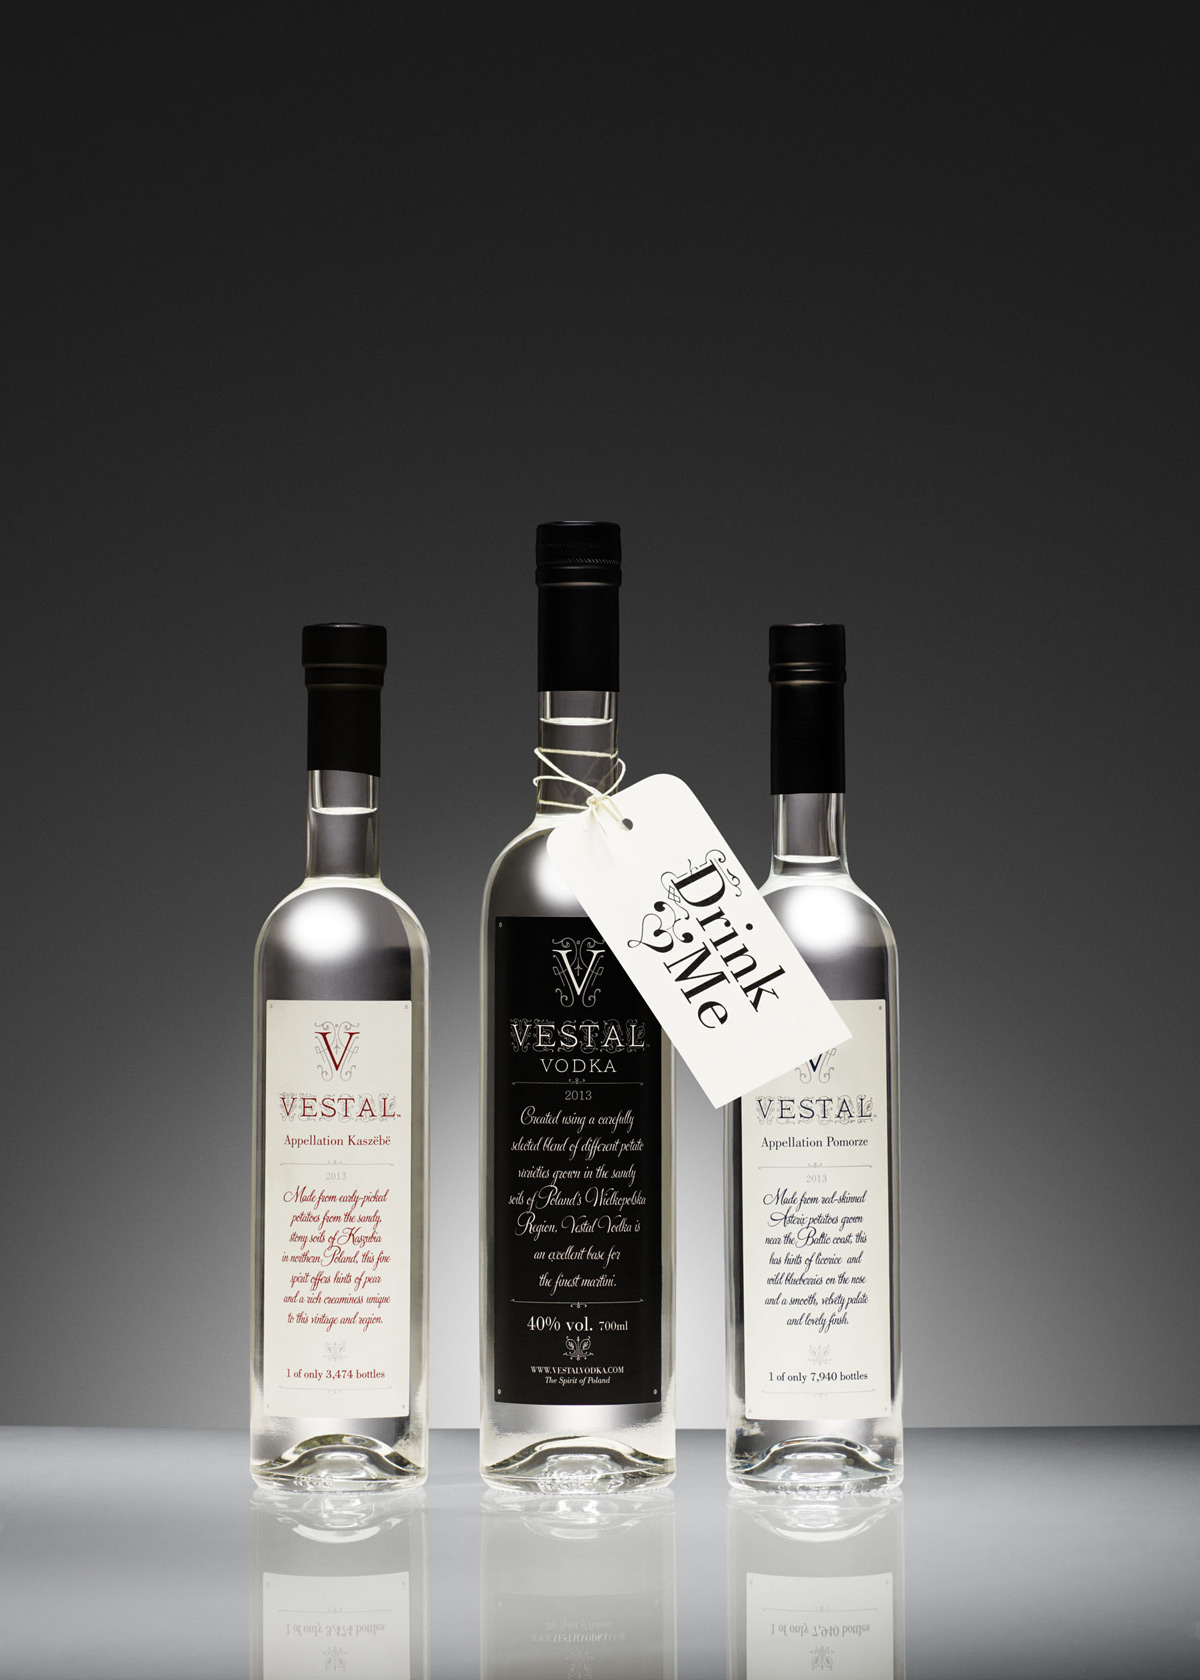 New UK Distributor for Vestal Vodka - Maverick Drinks